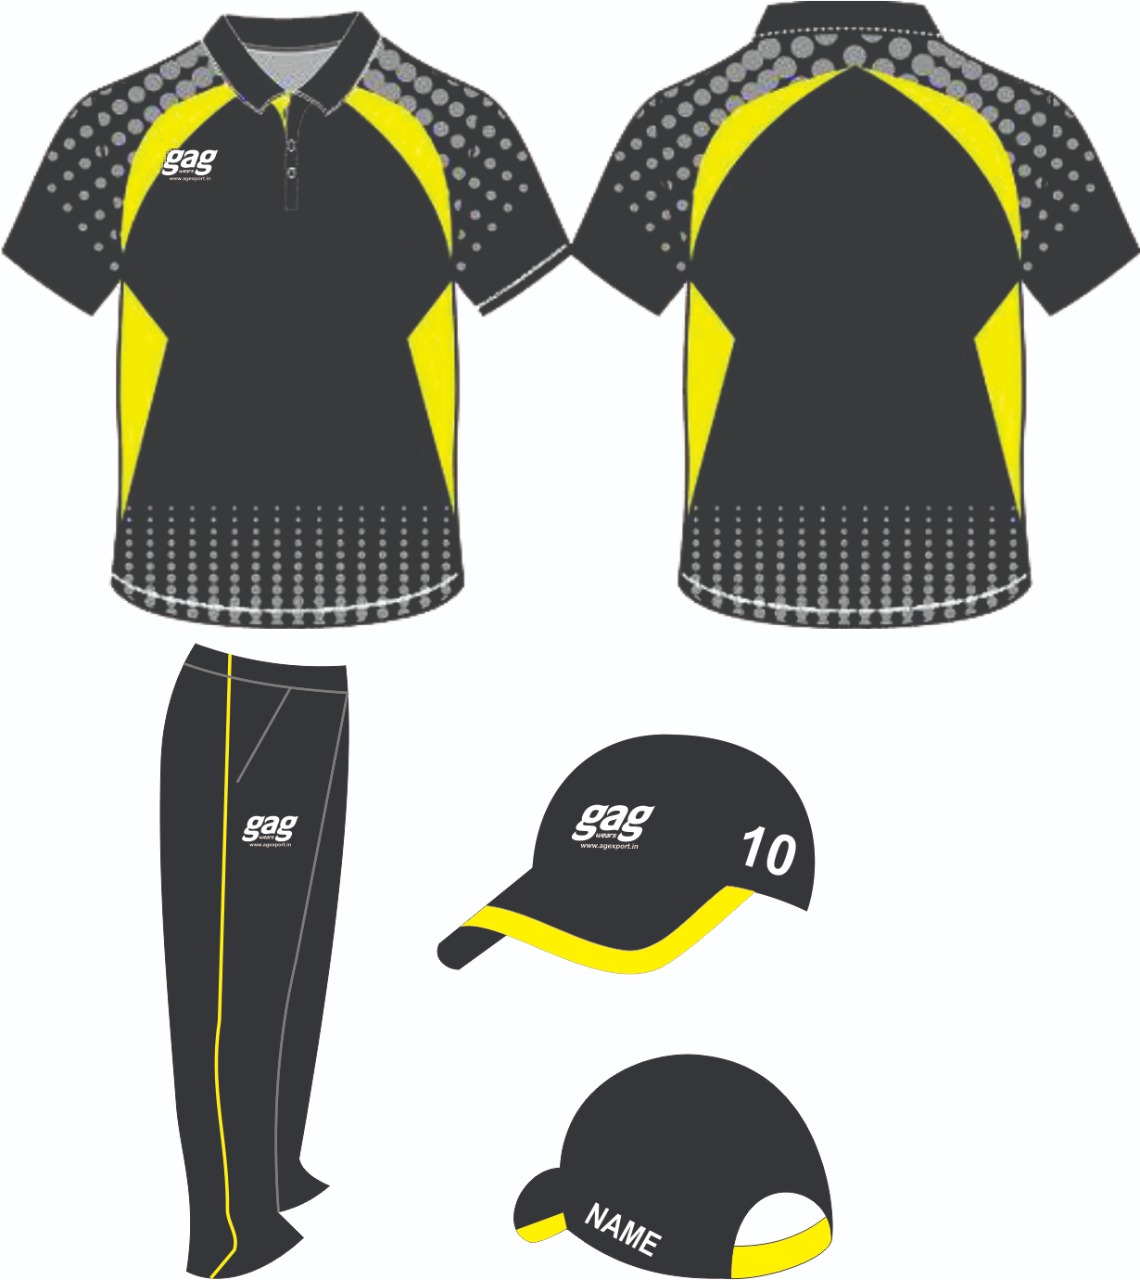 Cricket Uniform Manufacturers and Exporters in Tuensang